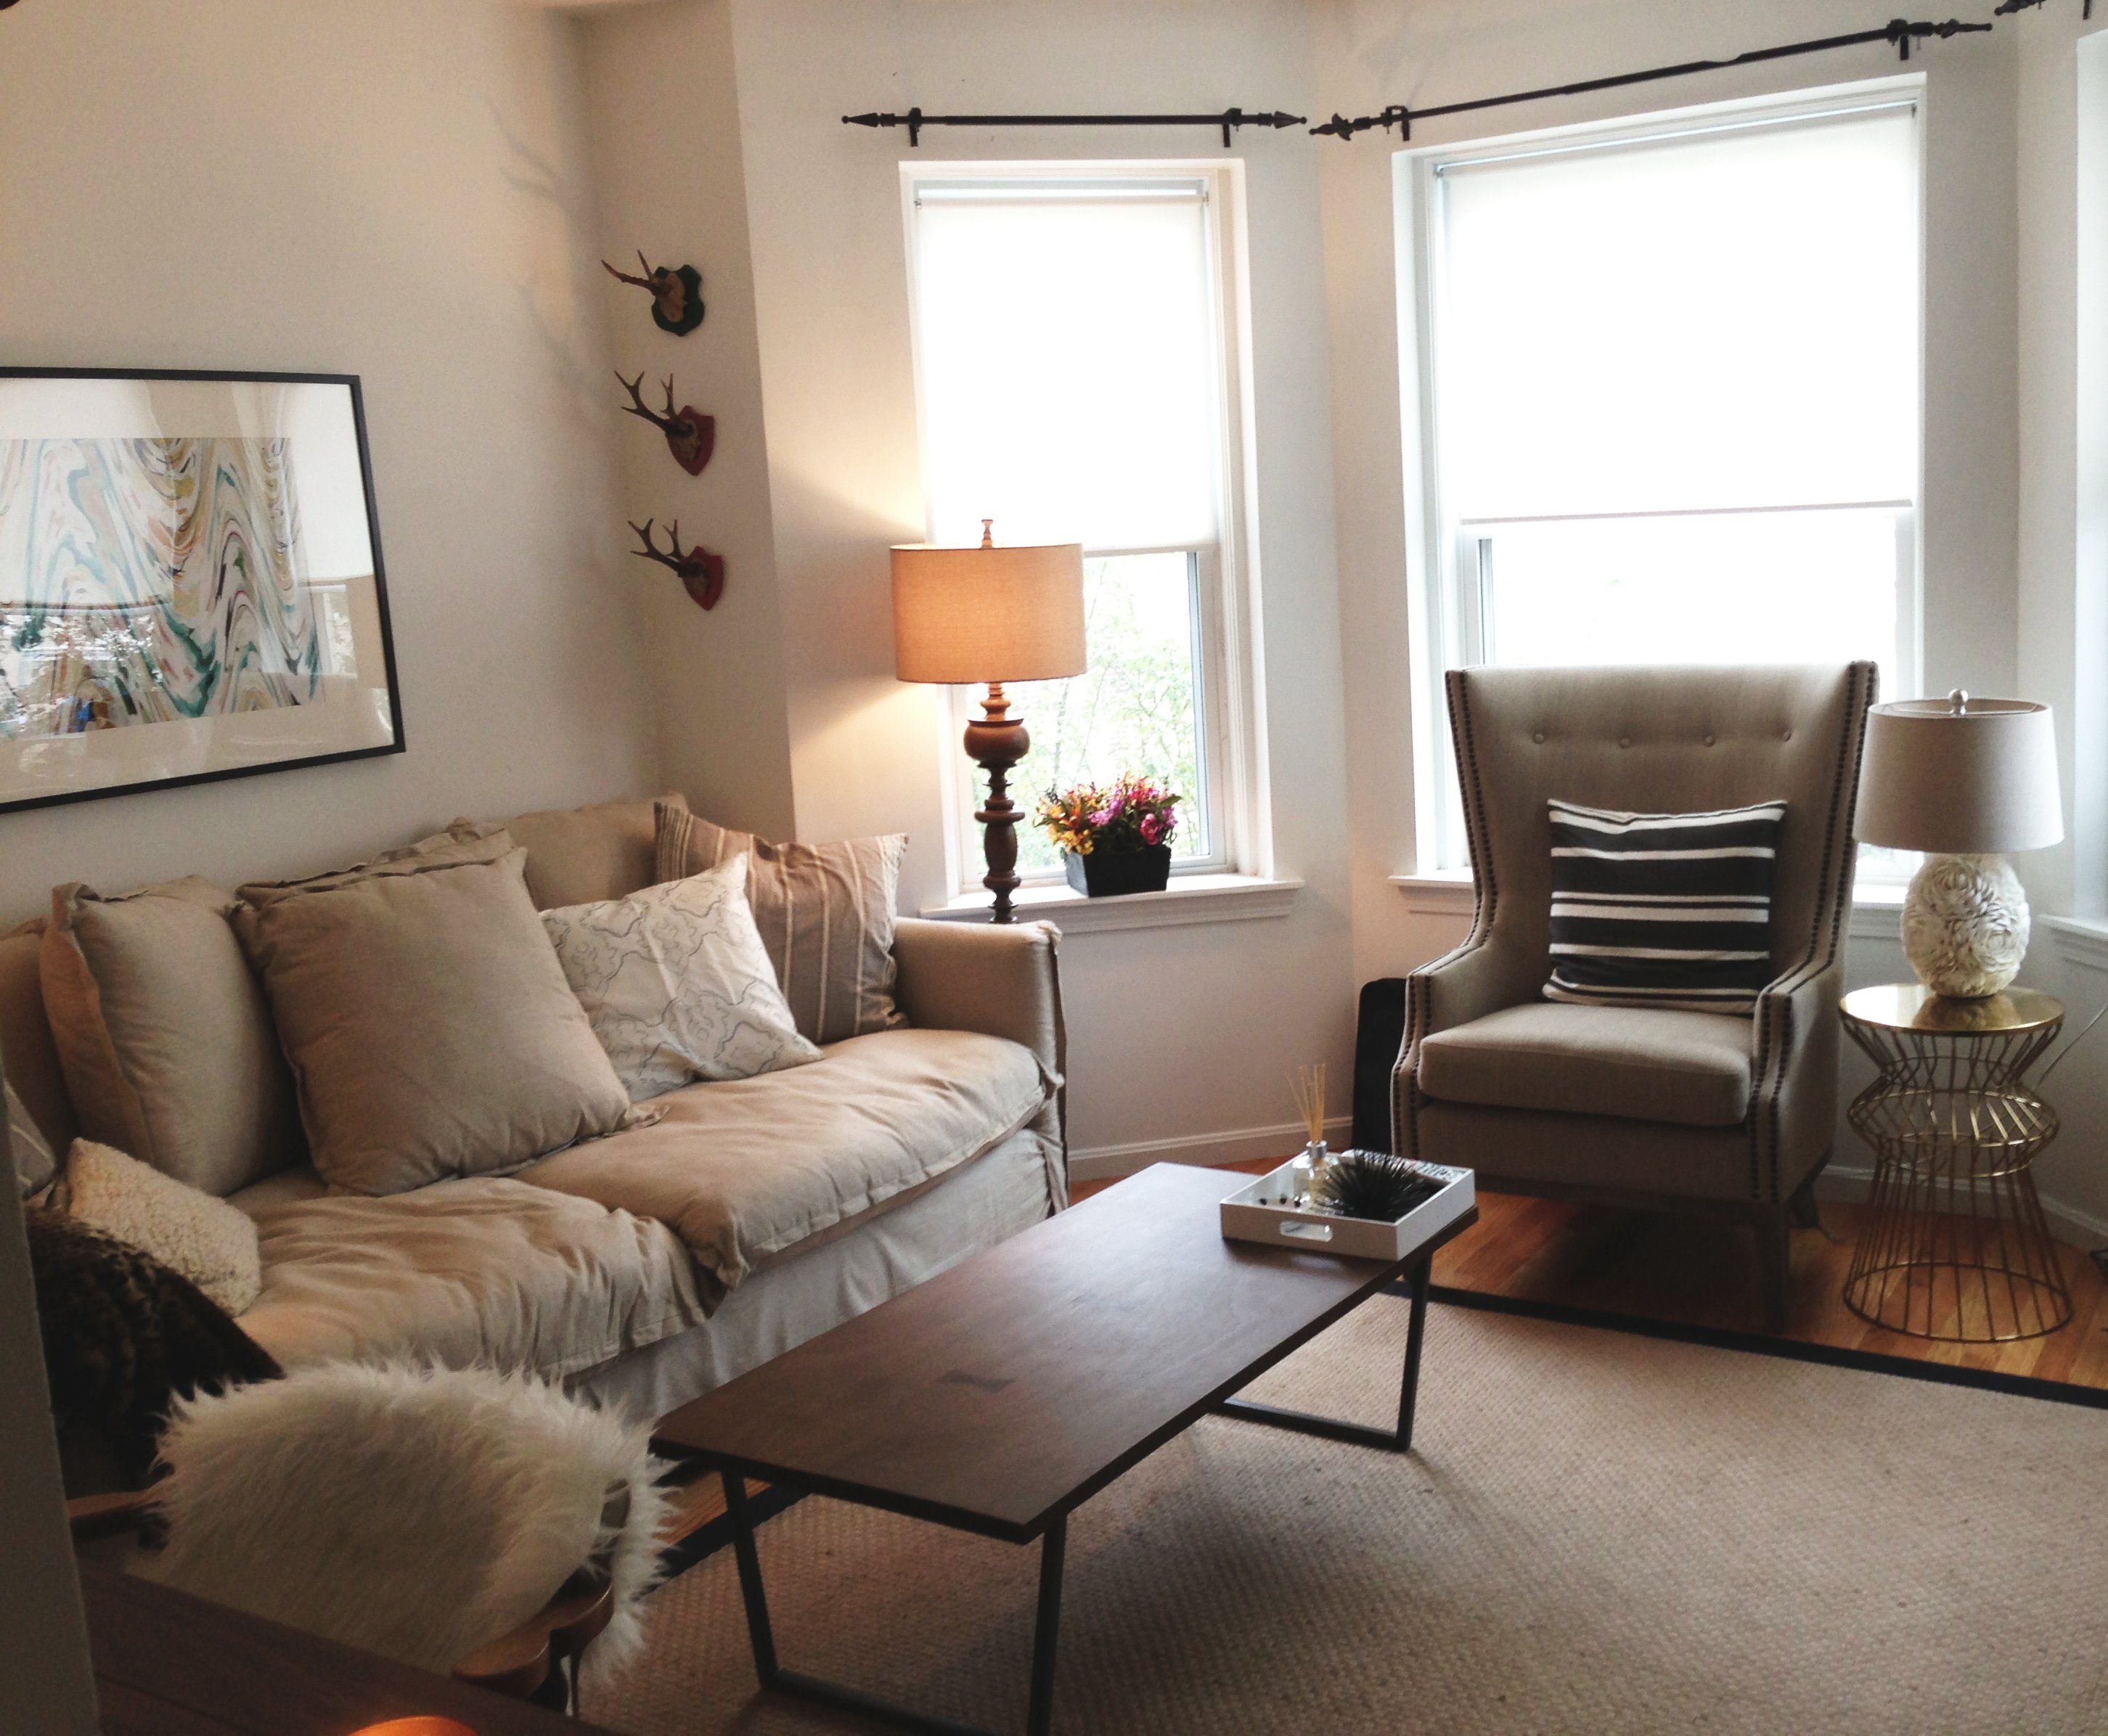 Paint Colors That Match This Apartment Therapy Photo SW 6006